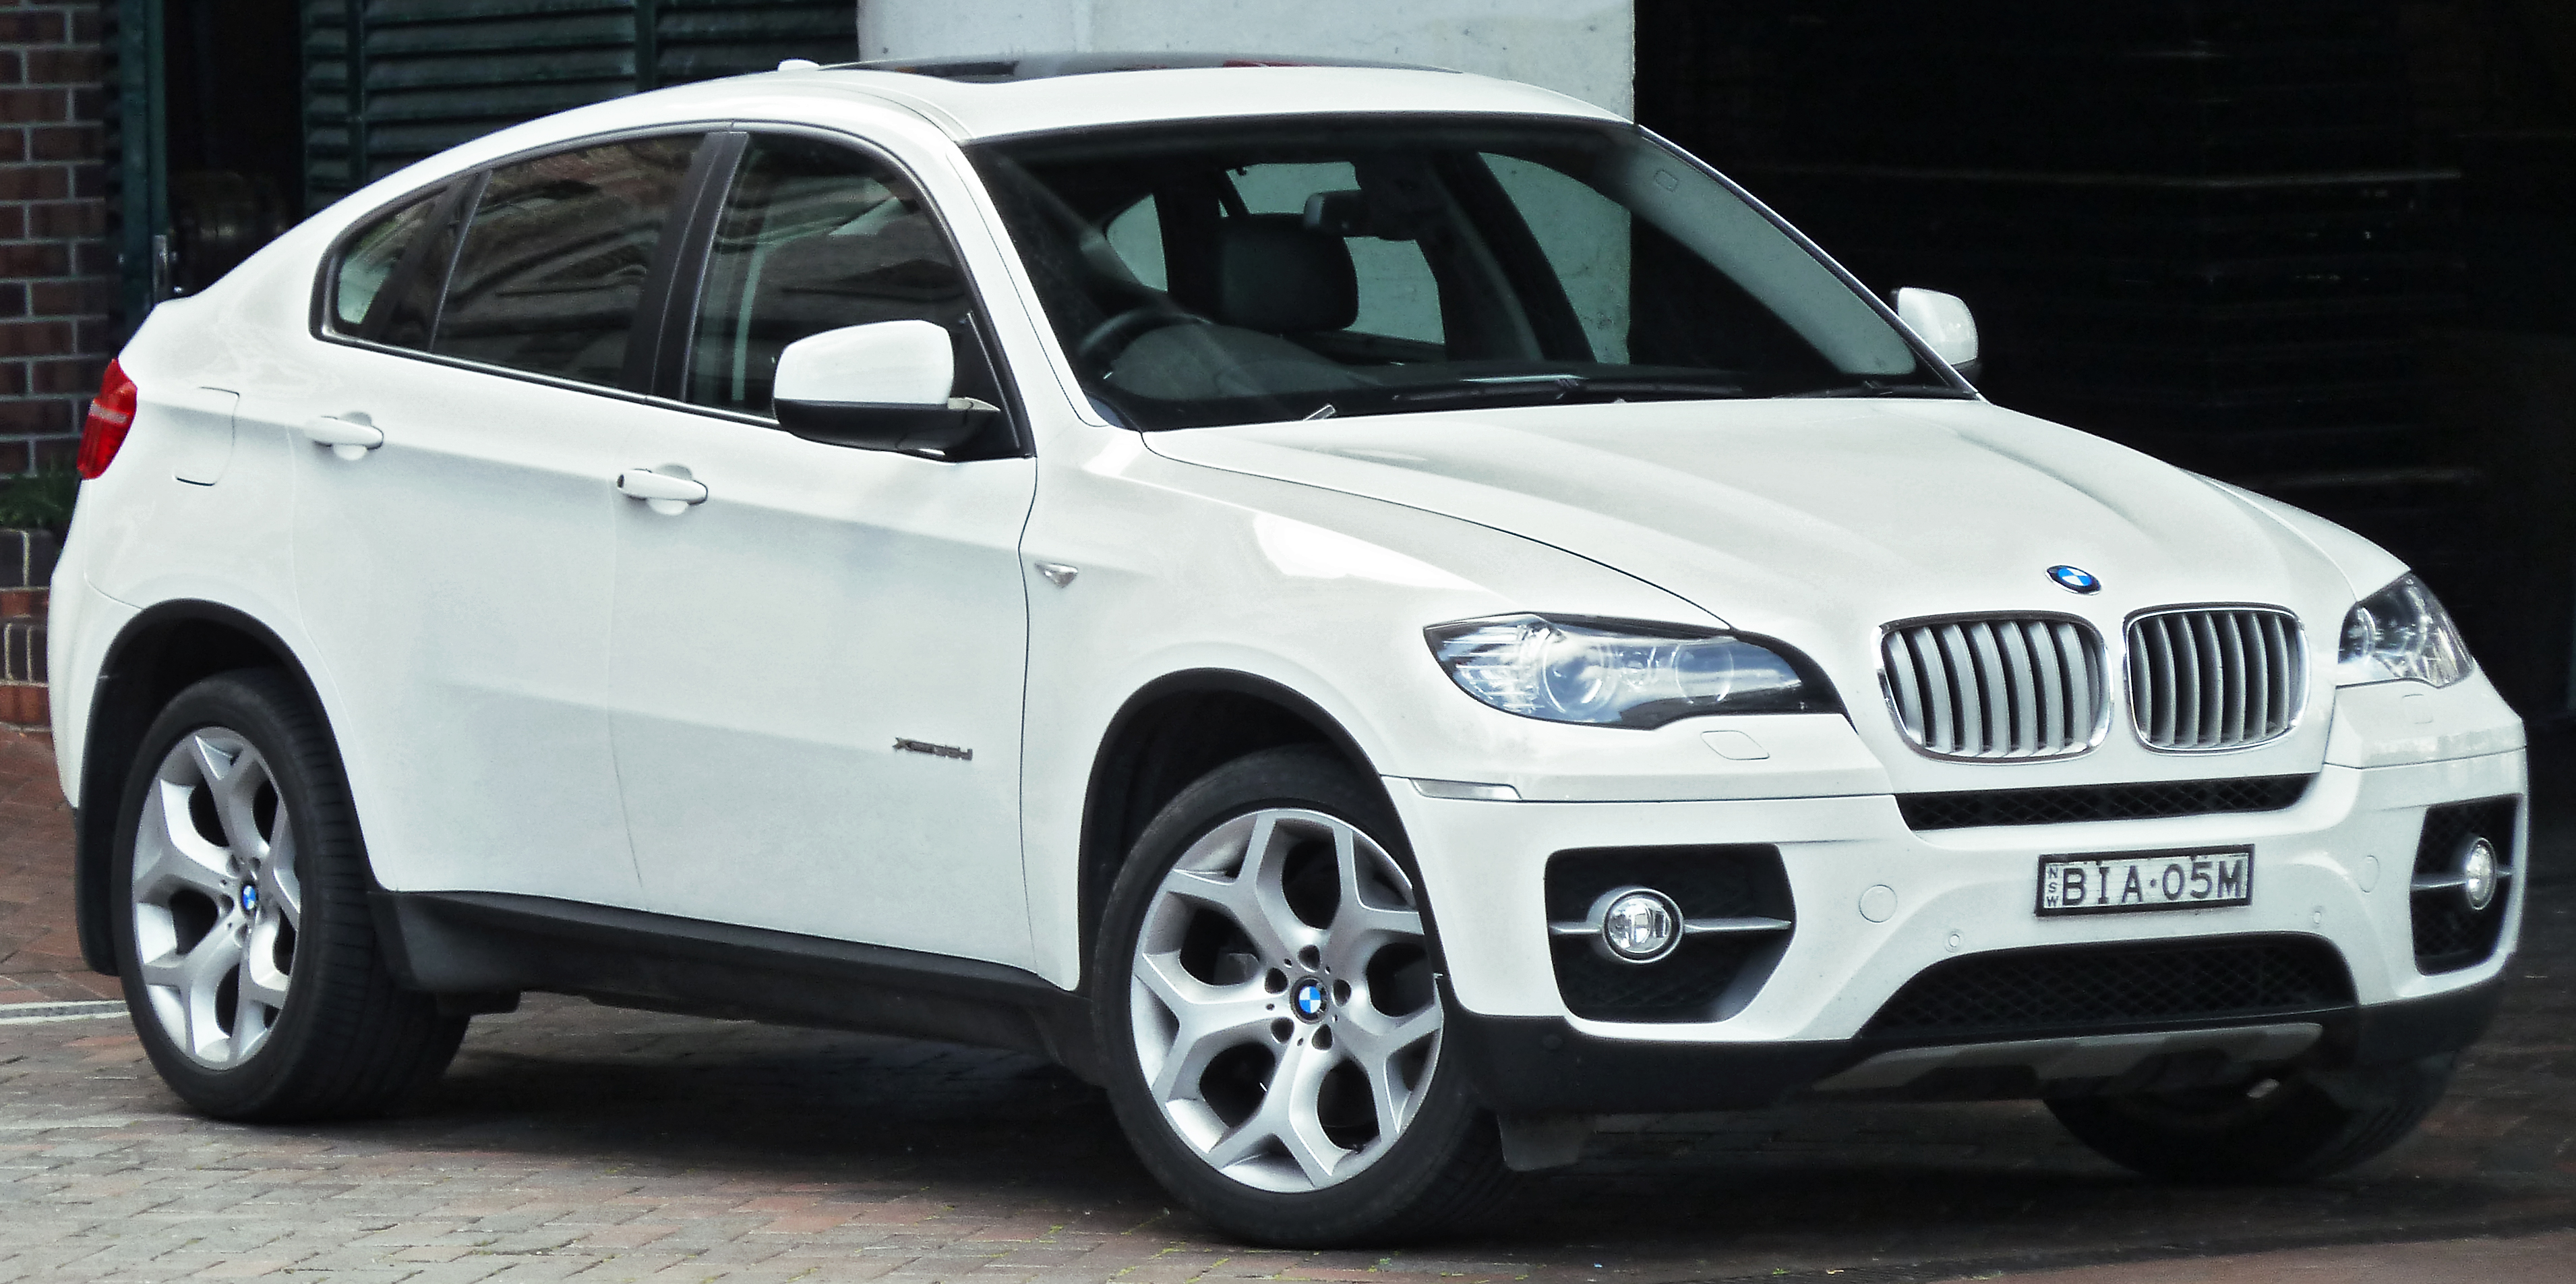 bmw x6 pictures #5